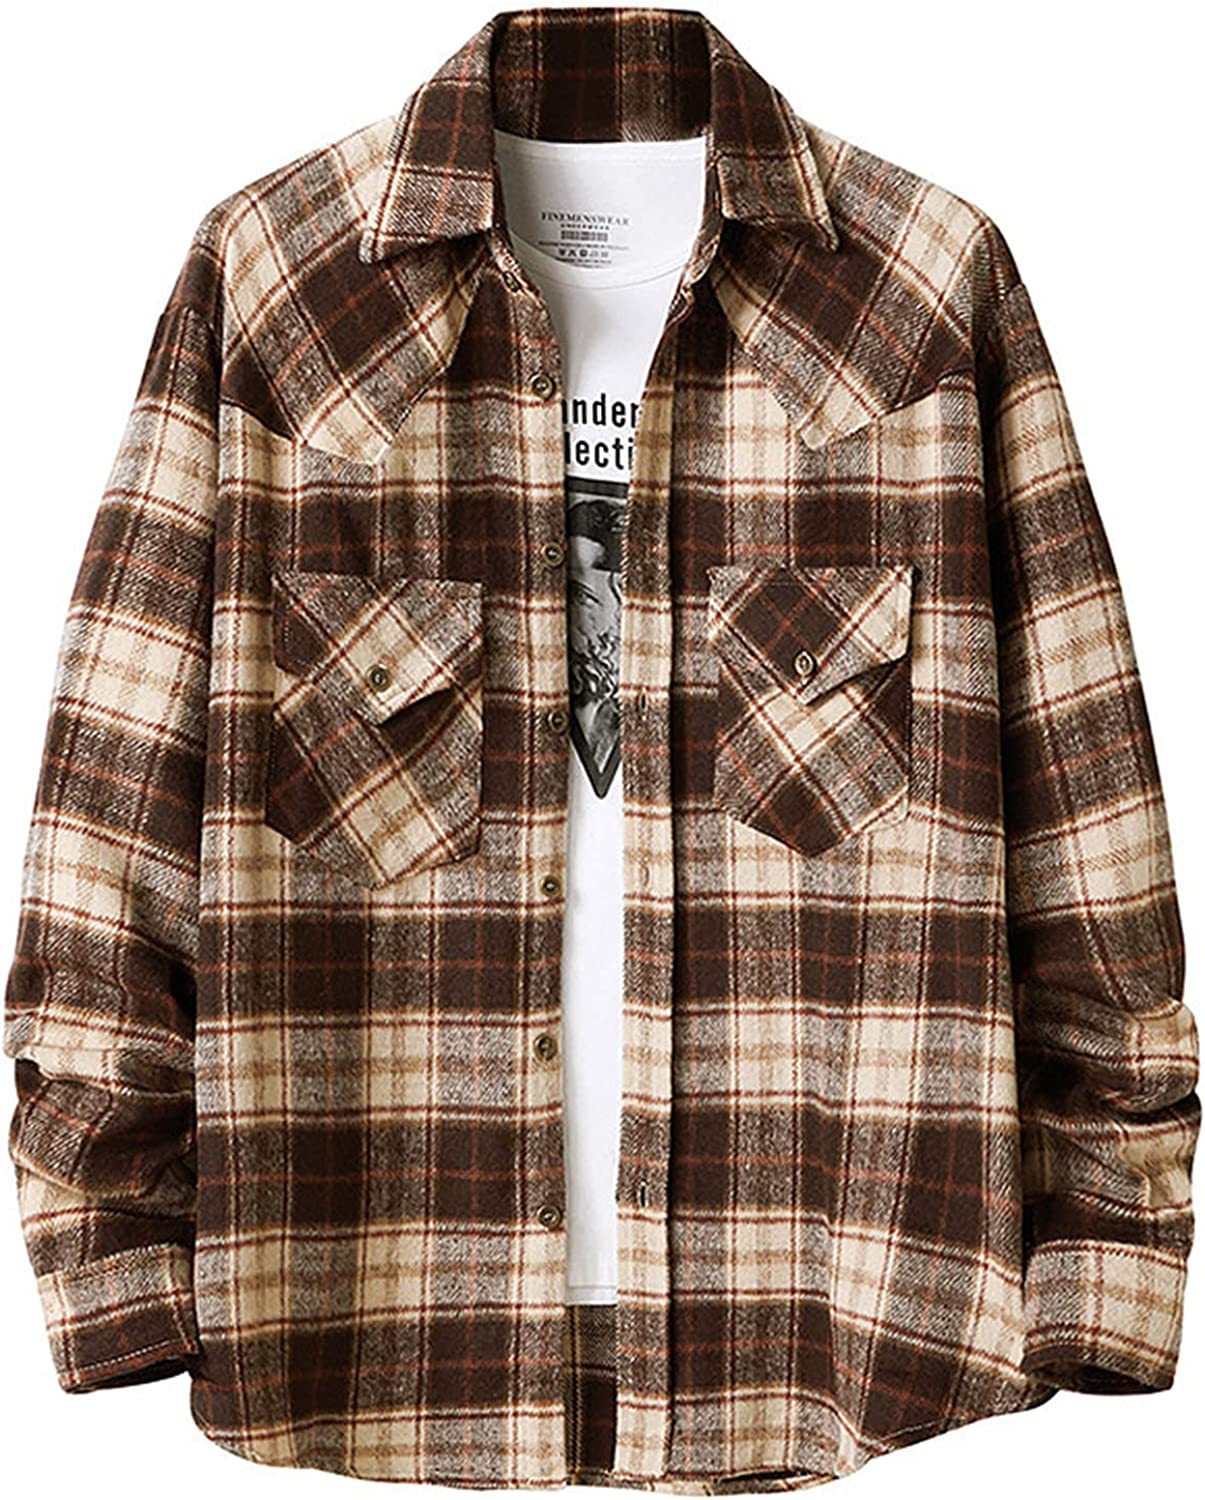 Shirt Jacket for Men Retro Plaid Flannel Button Down Long Sleeve Fuzzy Open Front Coat